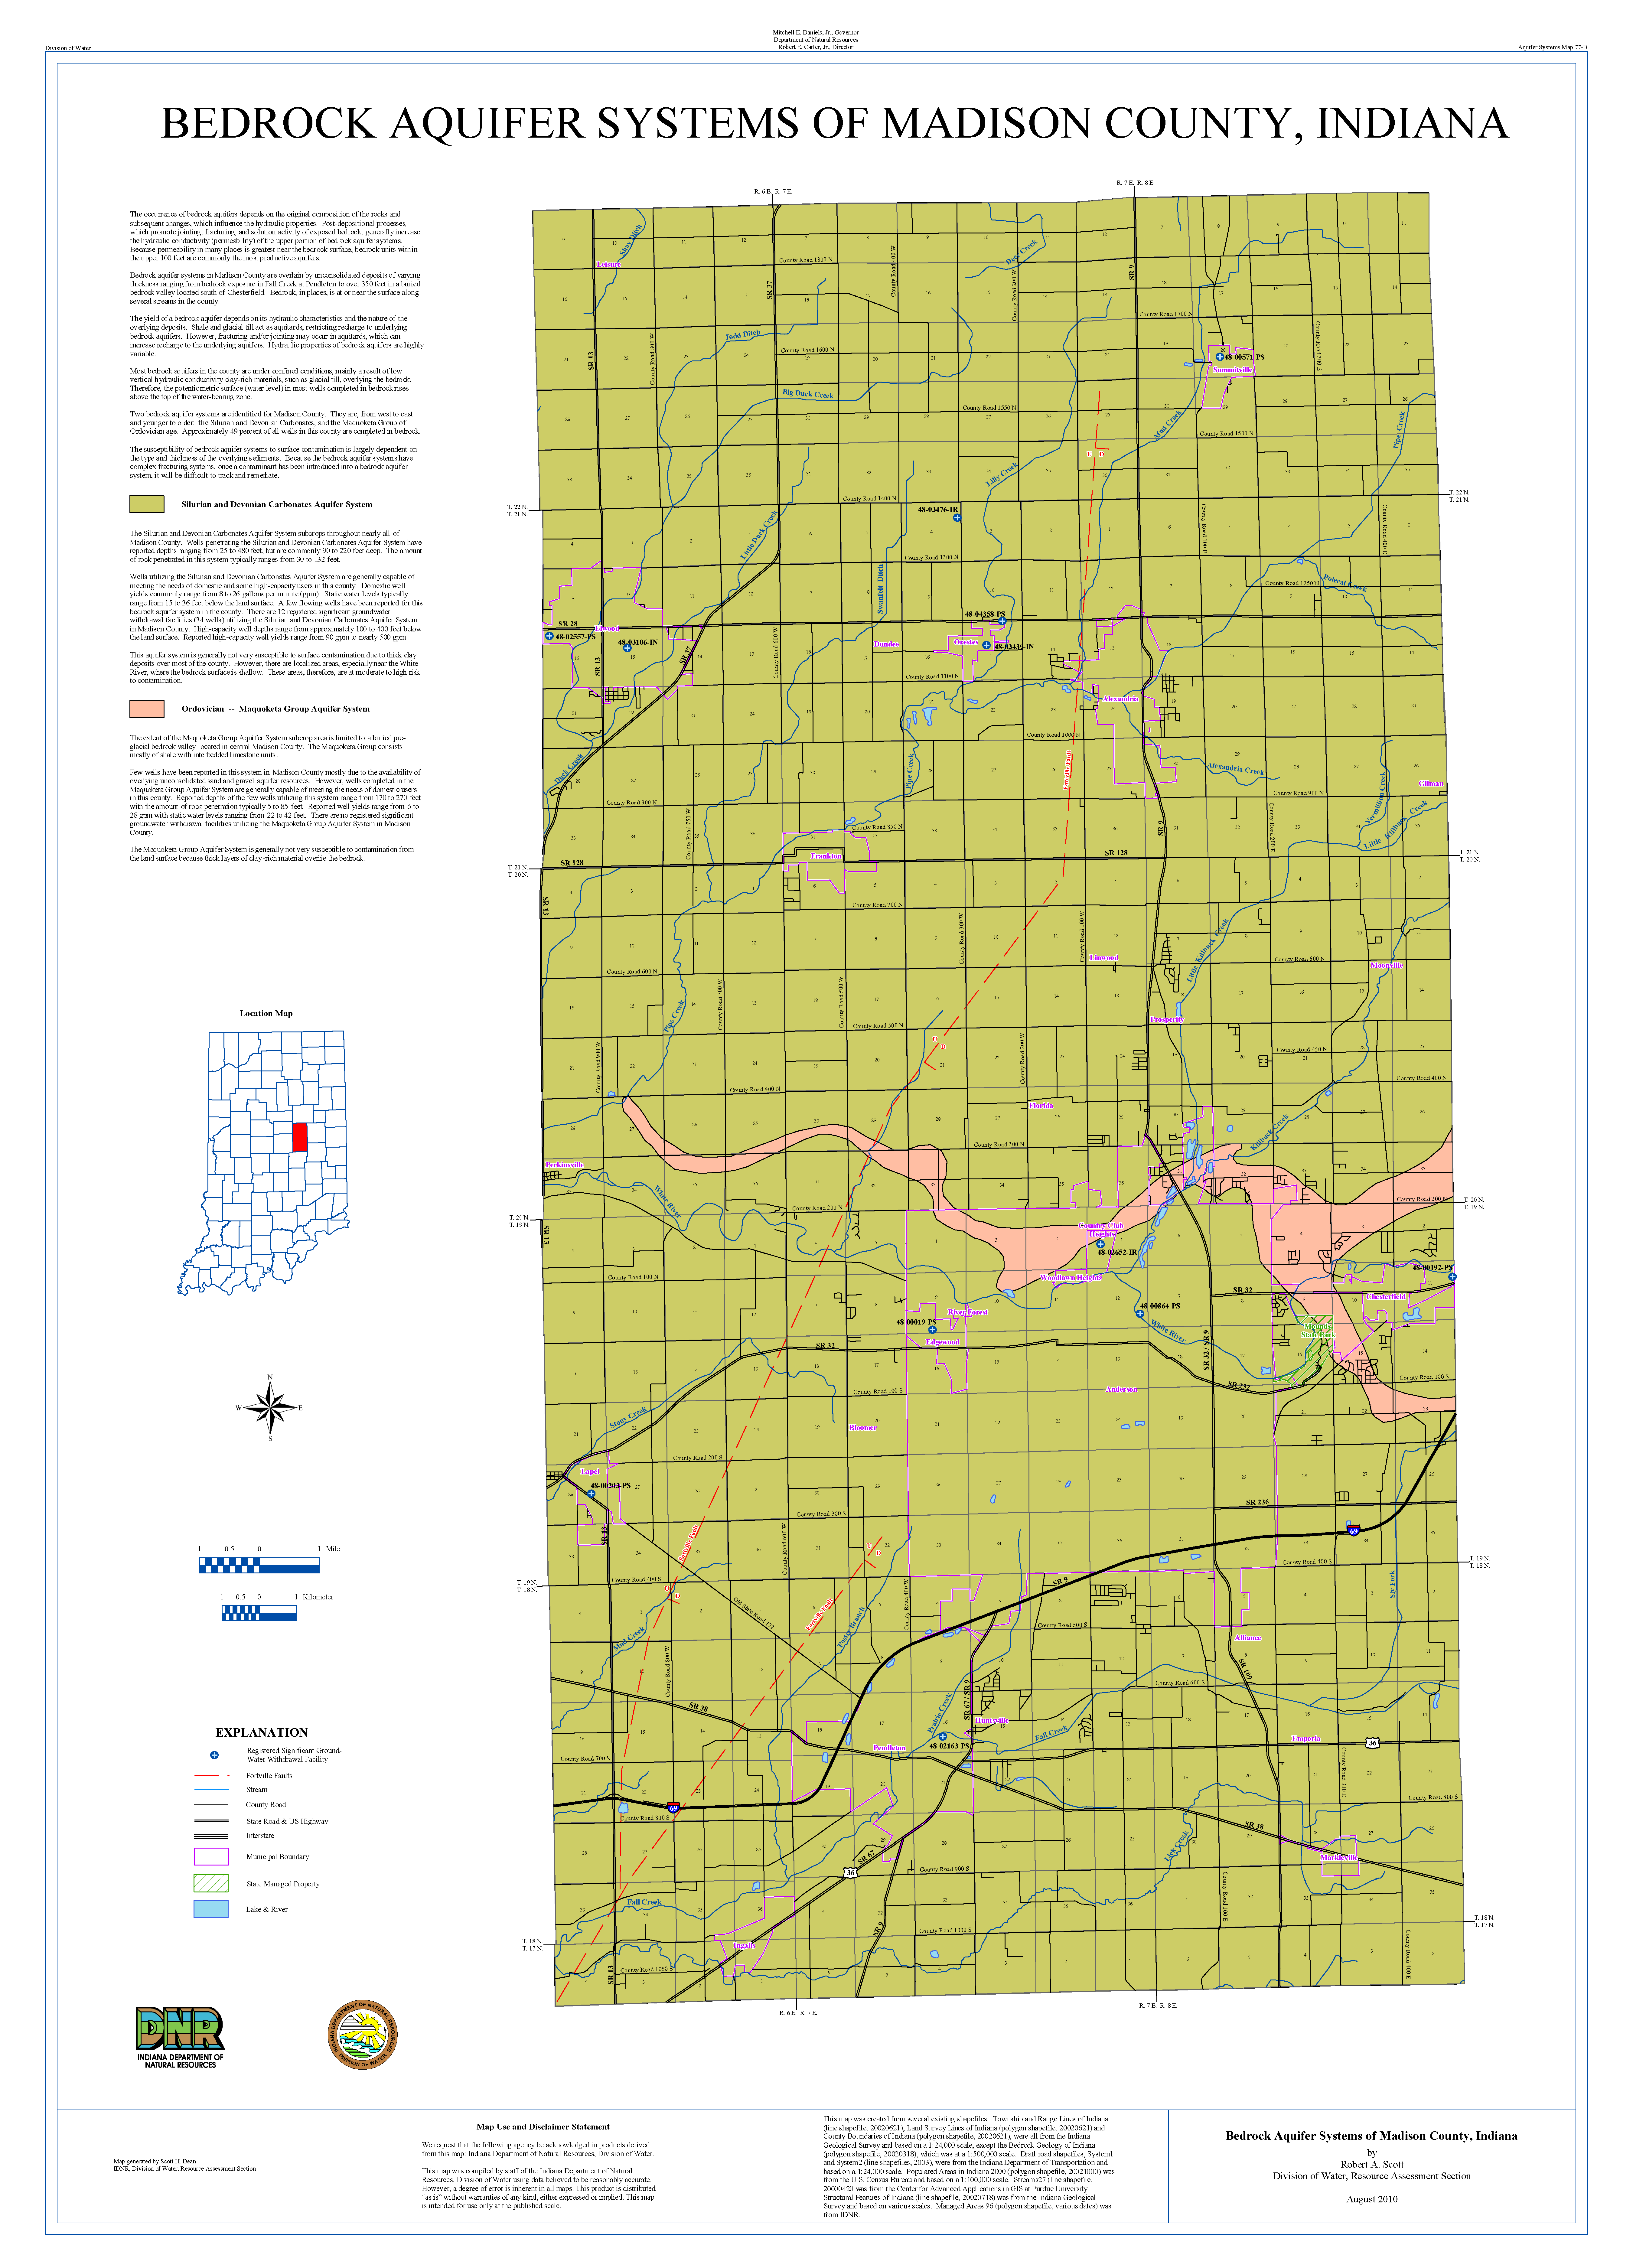 Dnr Aquifer Systems Maps 71 A And 71 B Unconsolidated And Bedrock